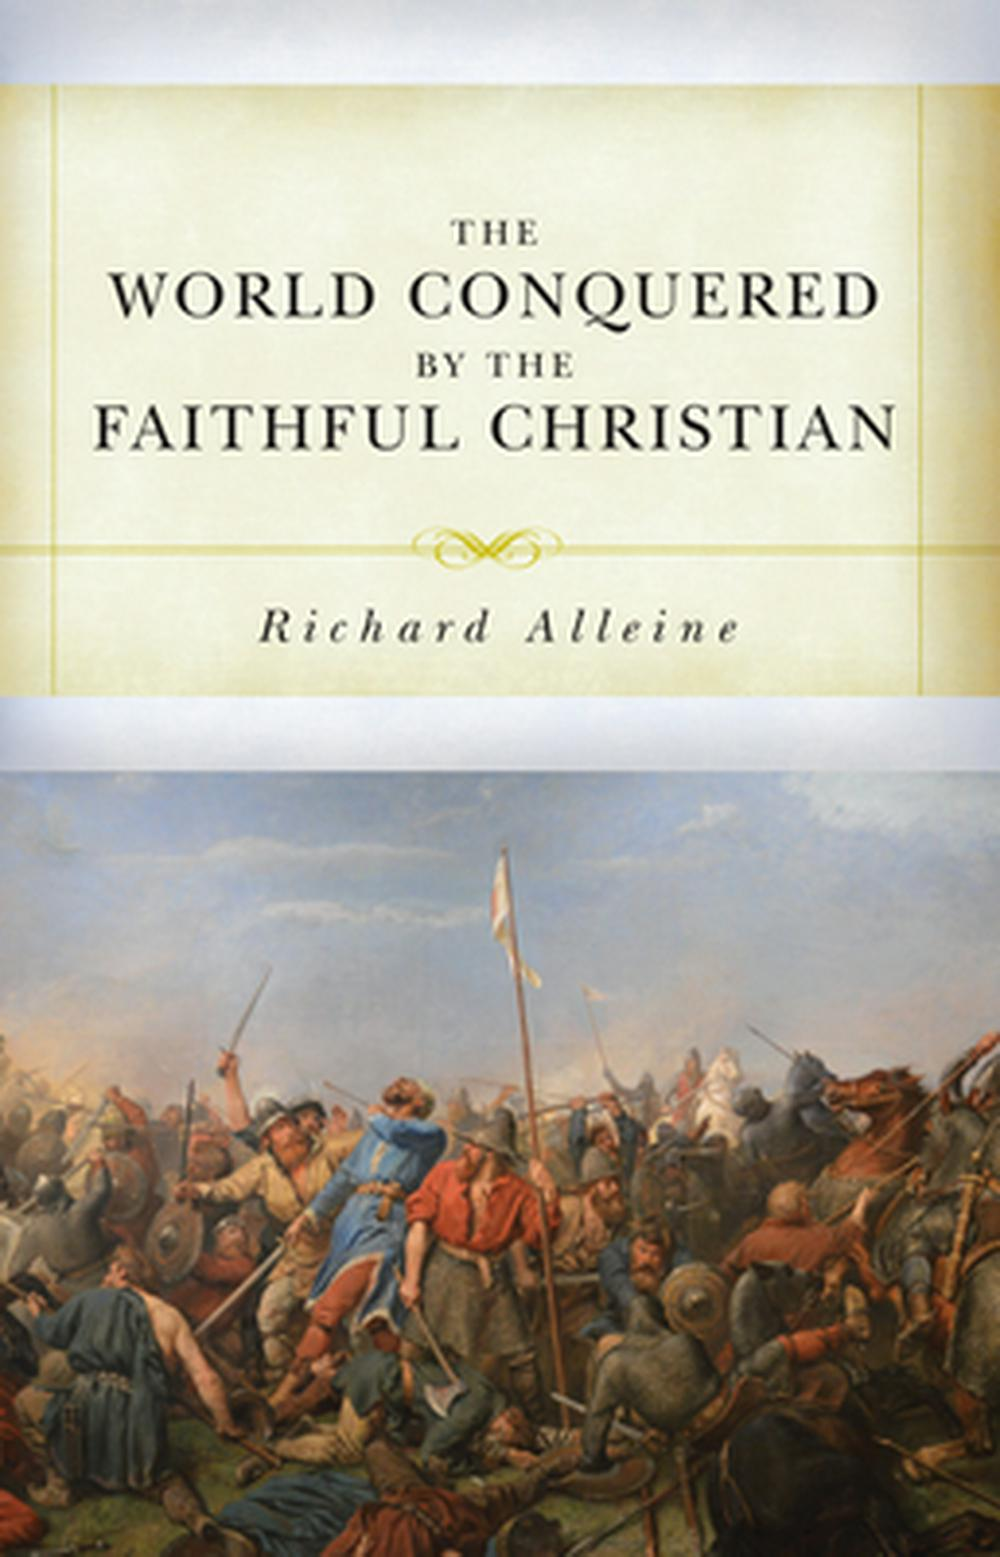 The World Conquered by the Faithful Christian